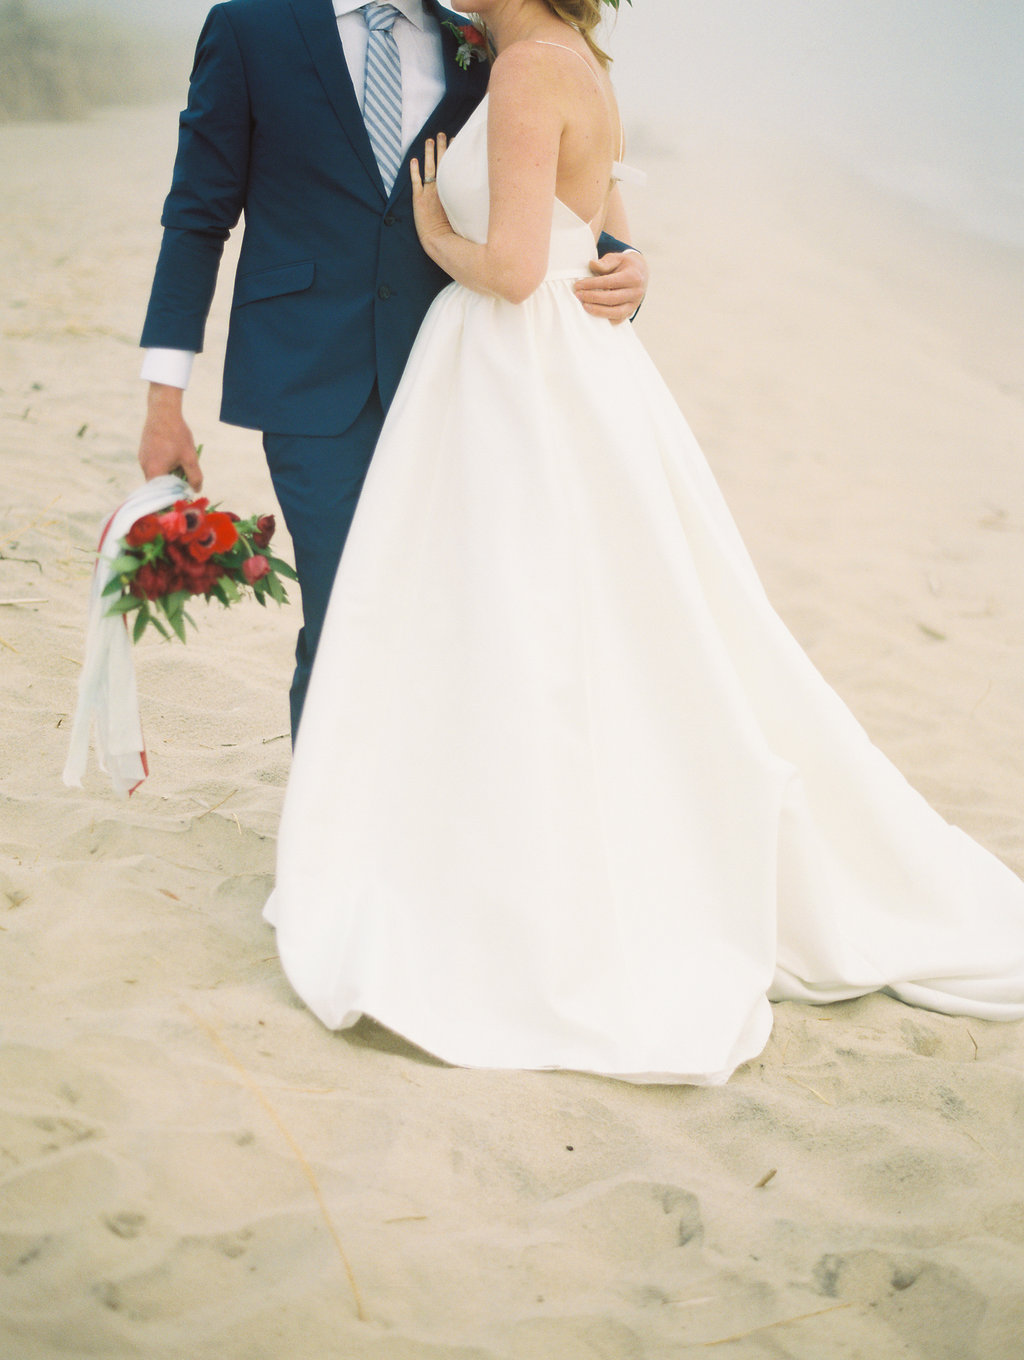 Couple hugging during their Lake Michigan wedding on the beach